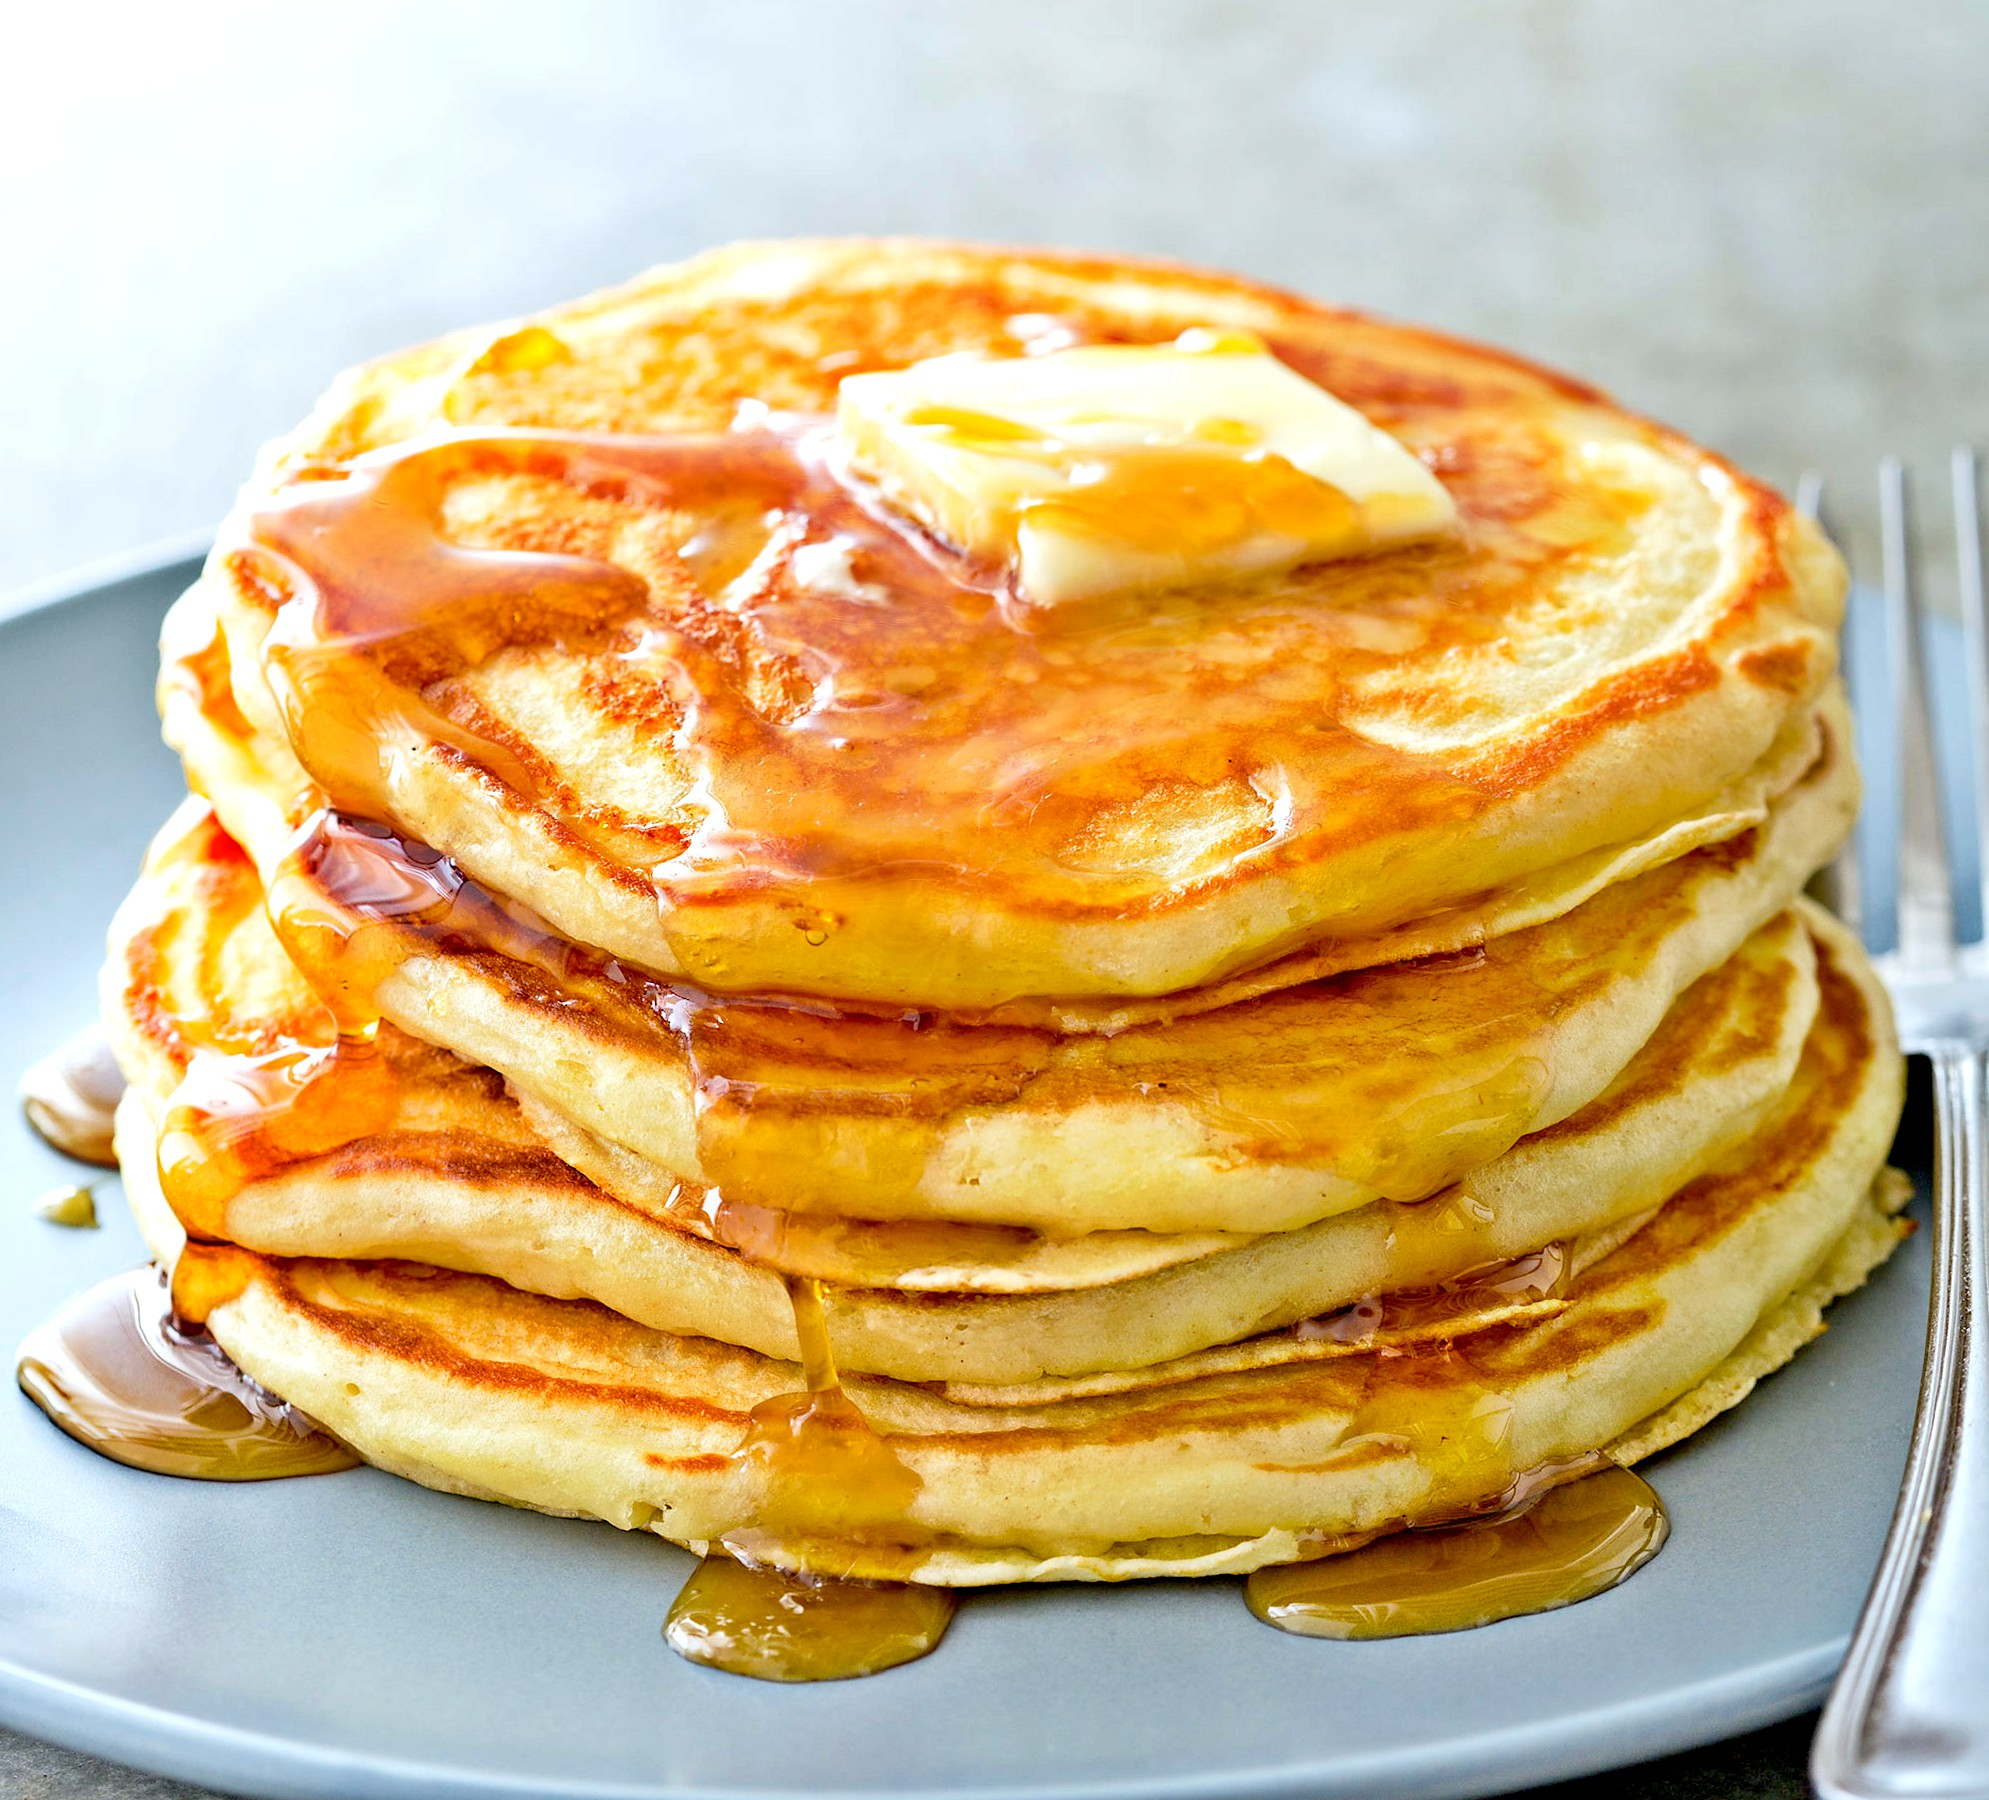 Image result for Pancake""